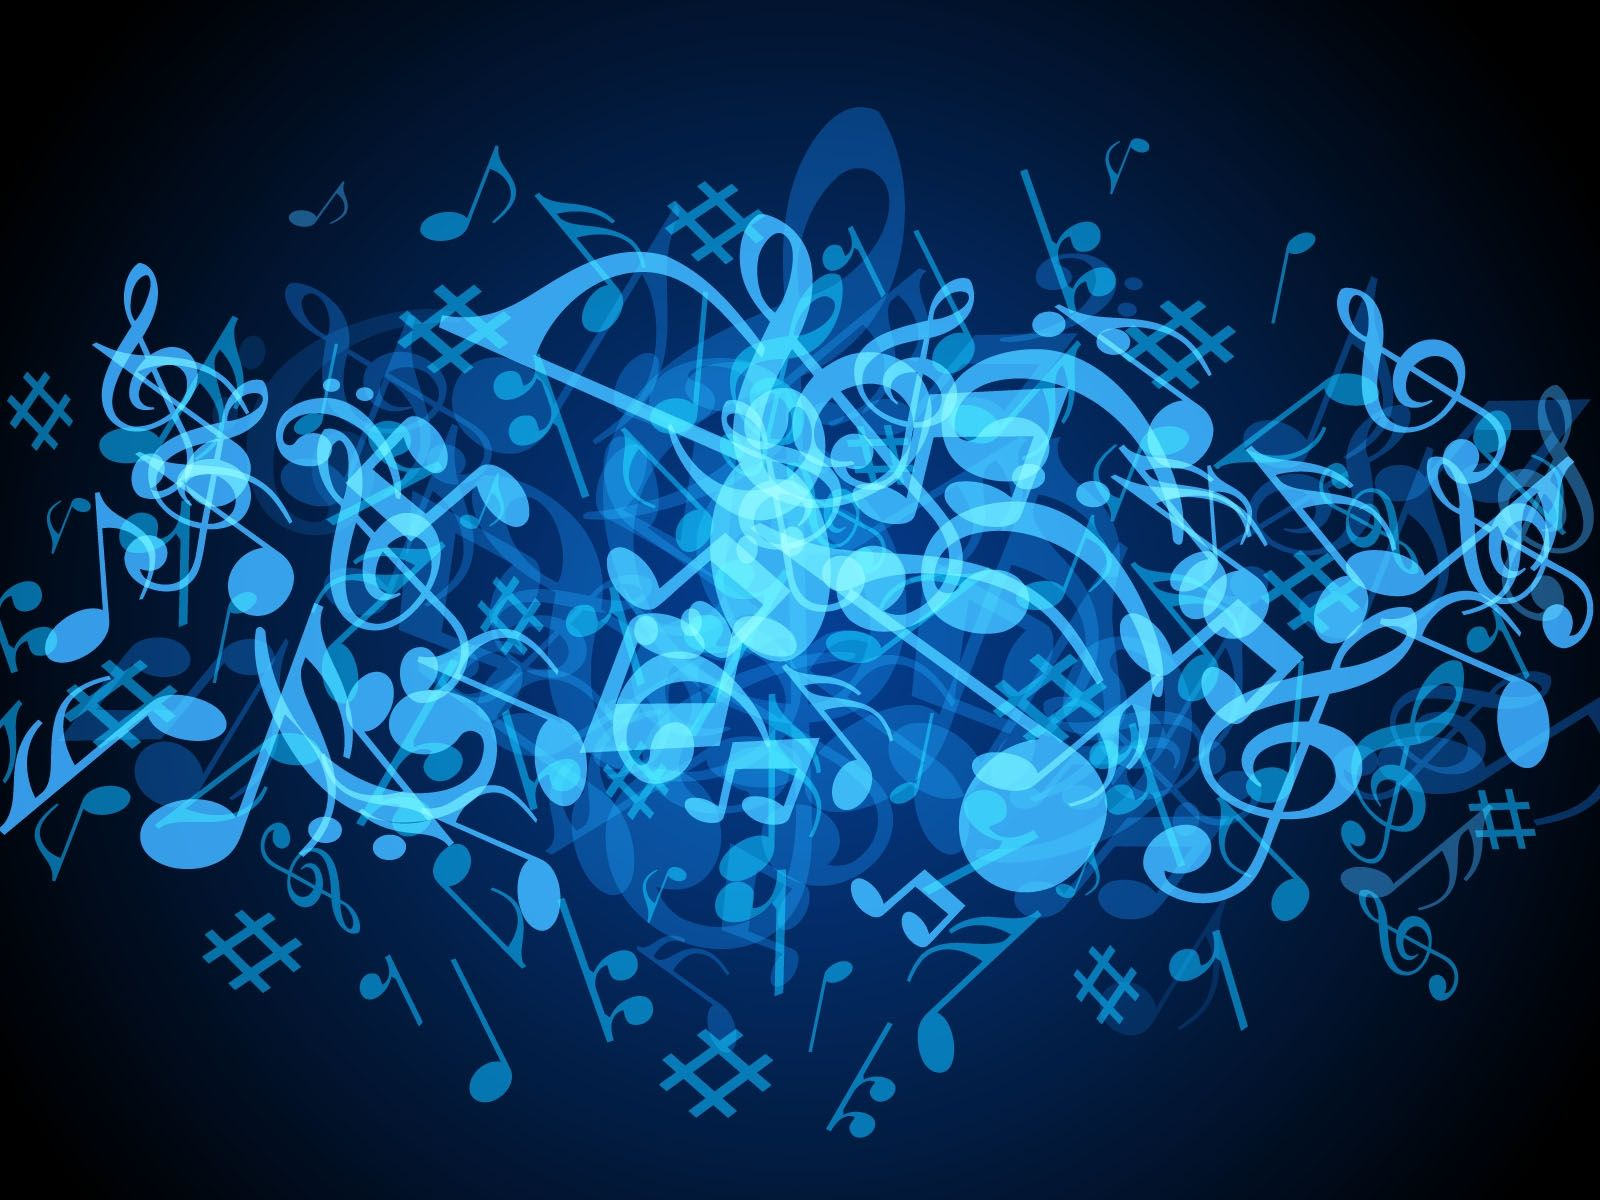 Abstract Music Wallpapers Photo - Scerbos com